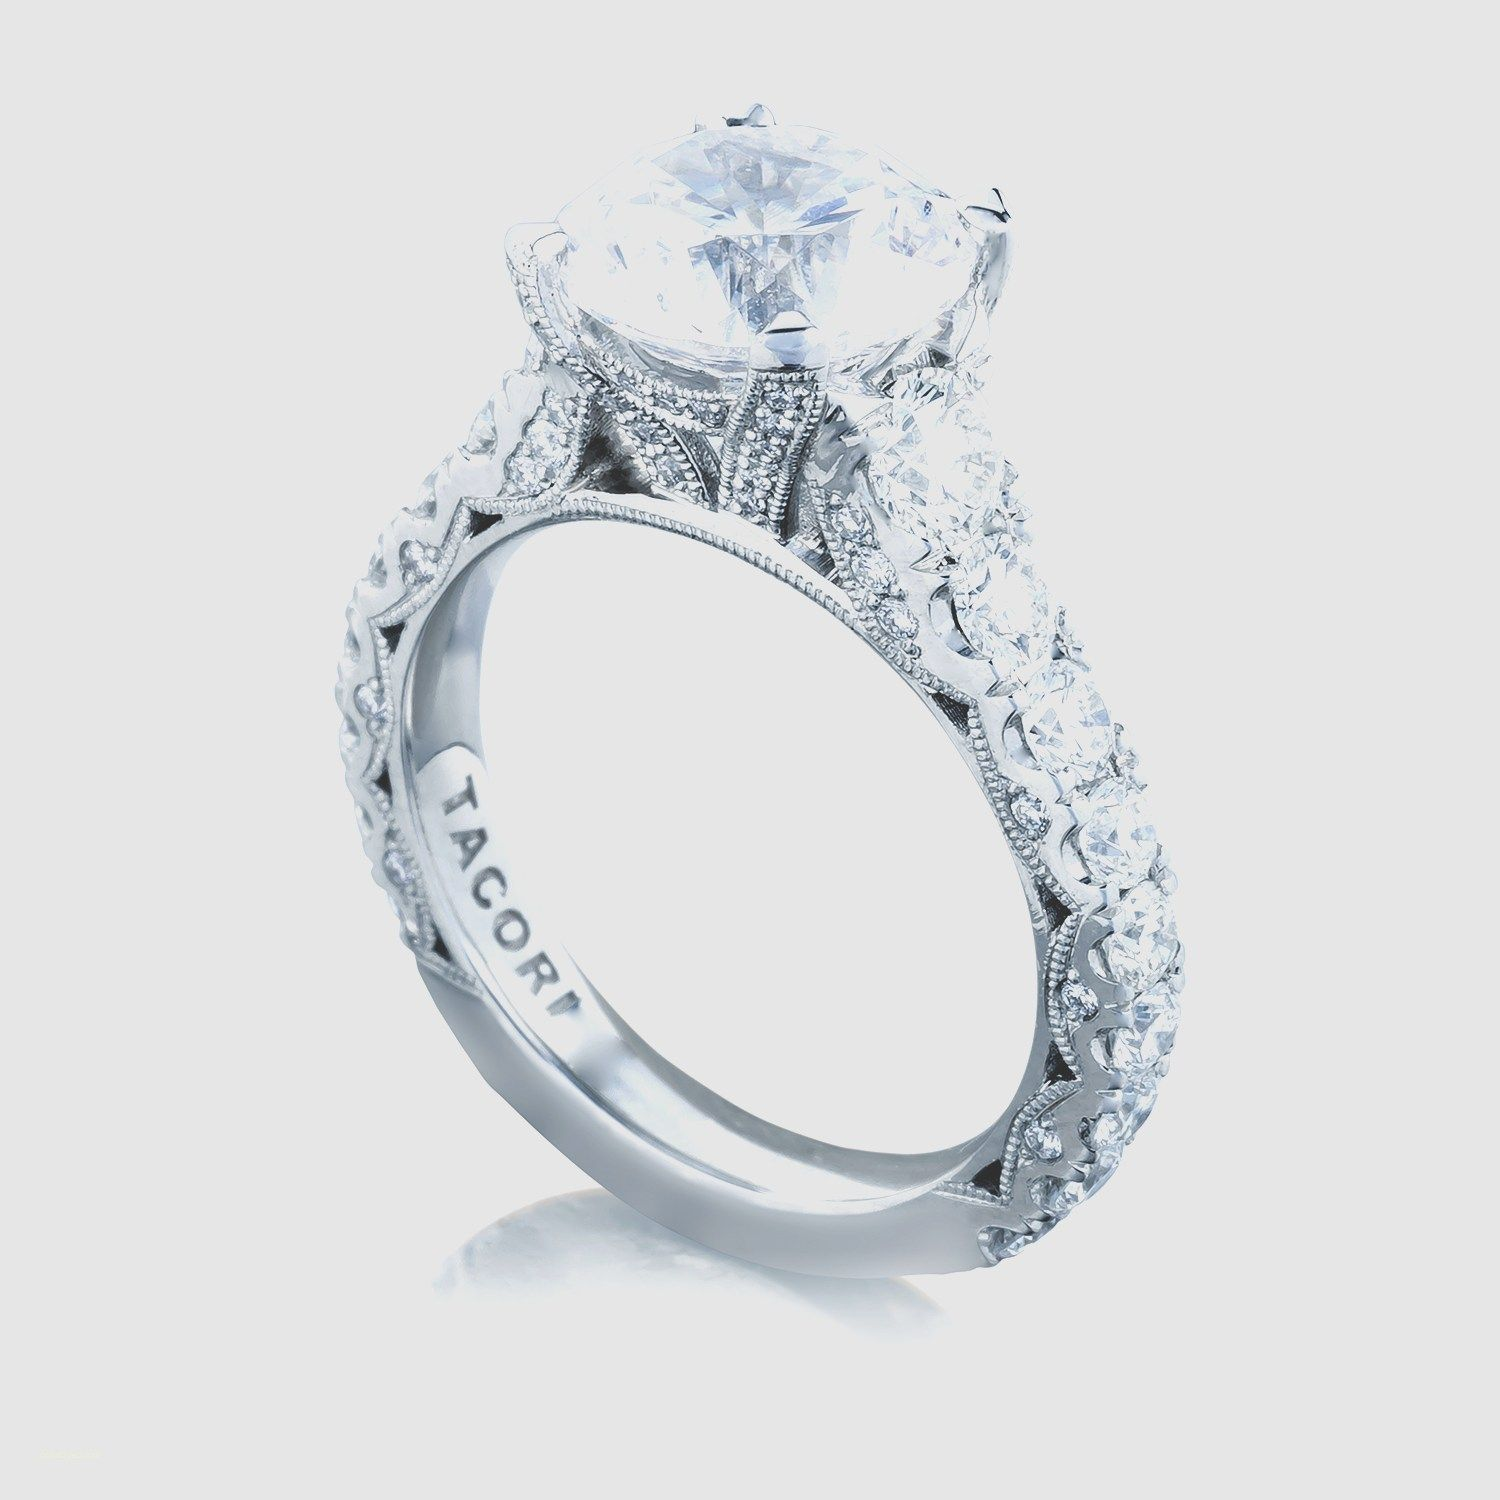 rings online order diamond engagement designs custom